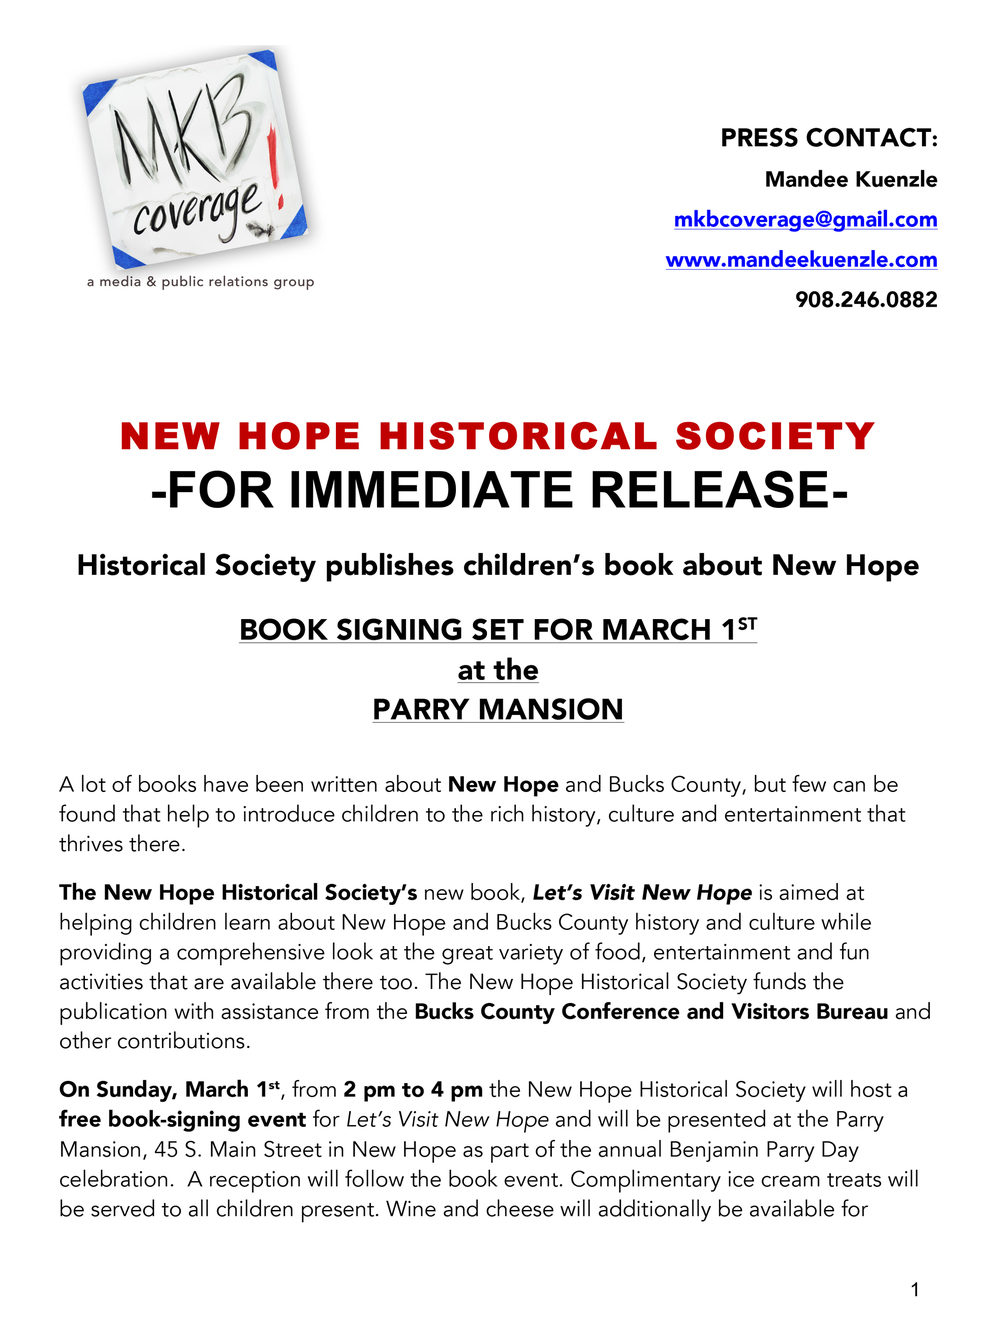 Release_HistoricalSociety_BookSigningEvent_FINAL-1.jpg